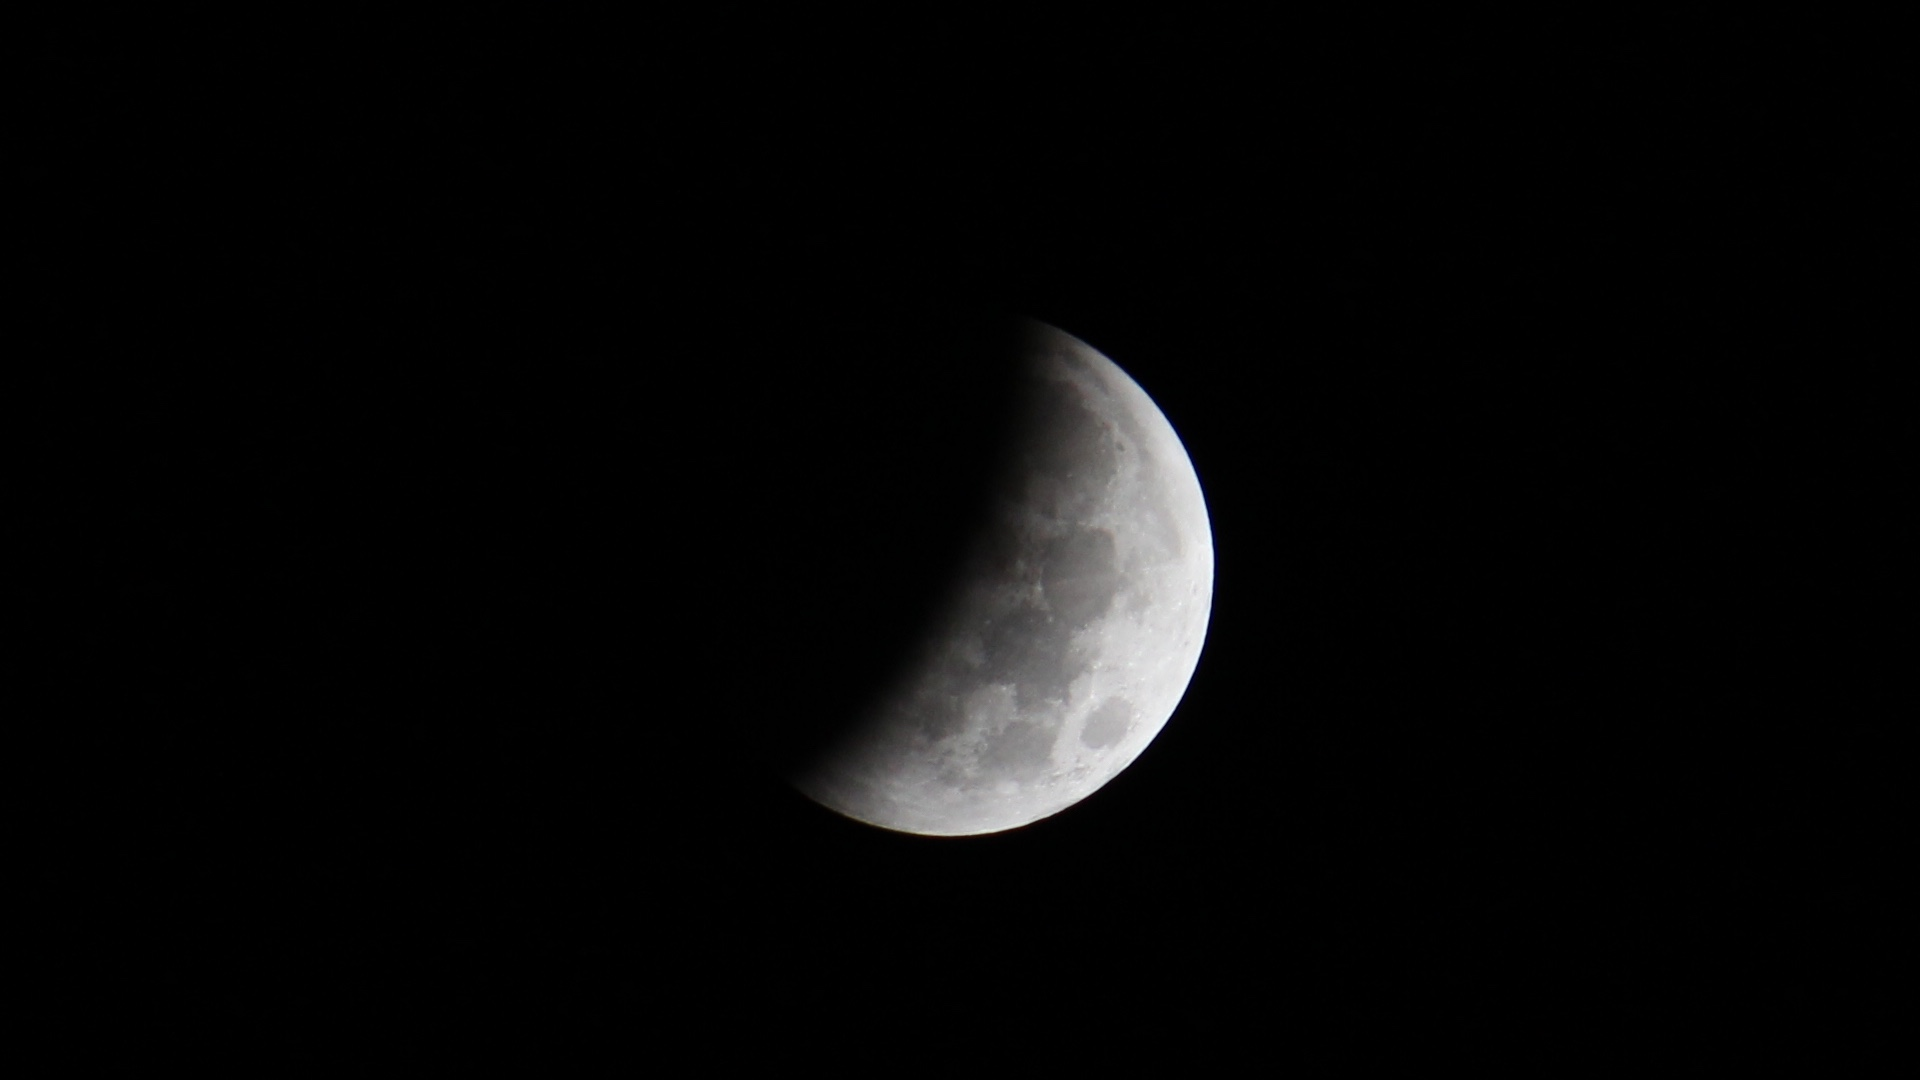 Lunar Eclipse 20141008 4